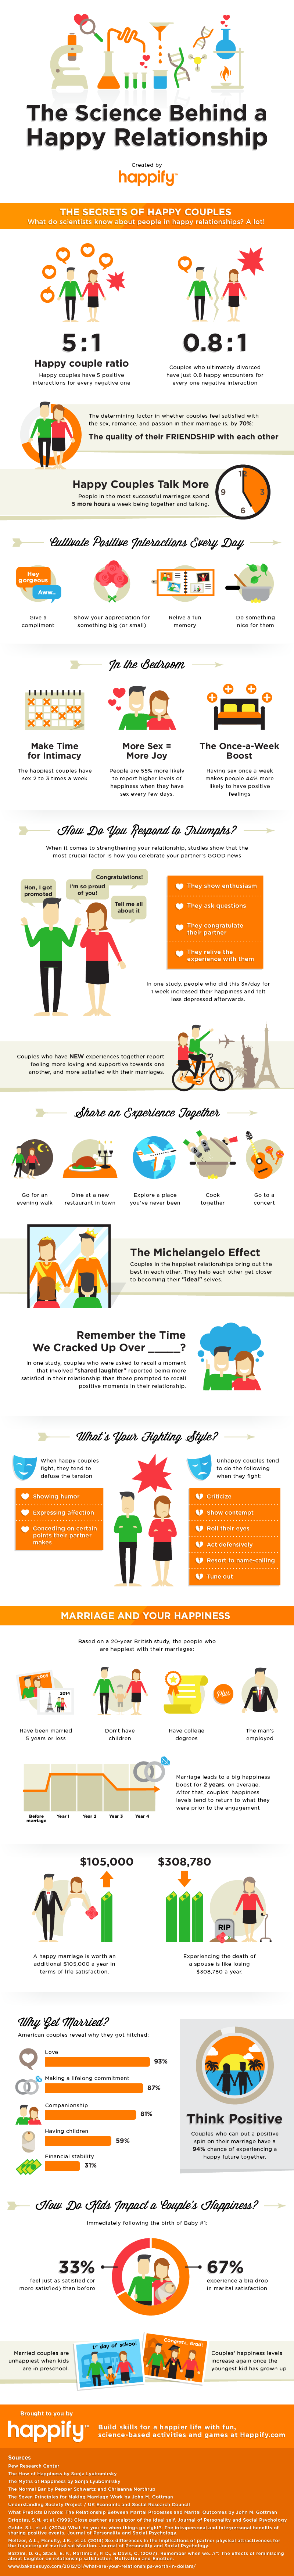 The Secret Of Happy Relations Infographic